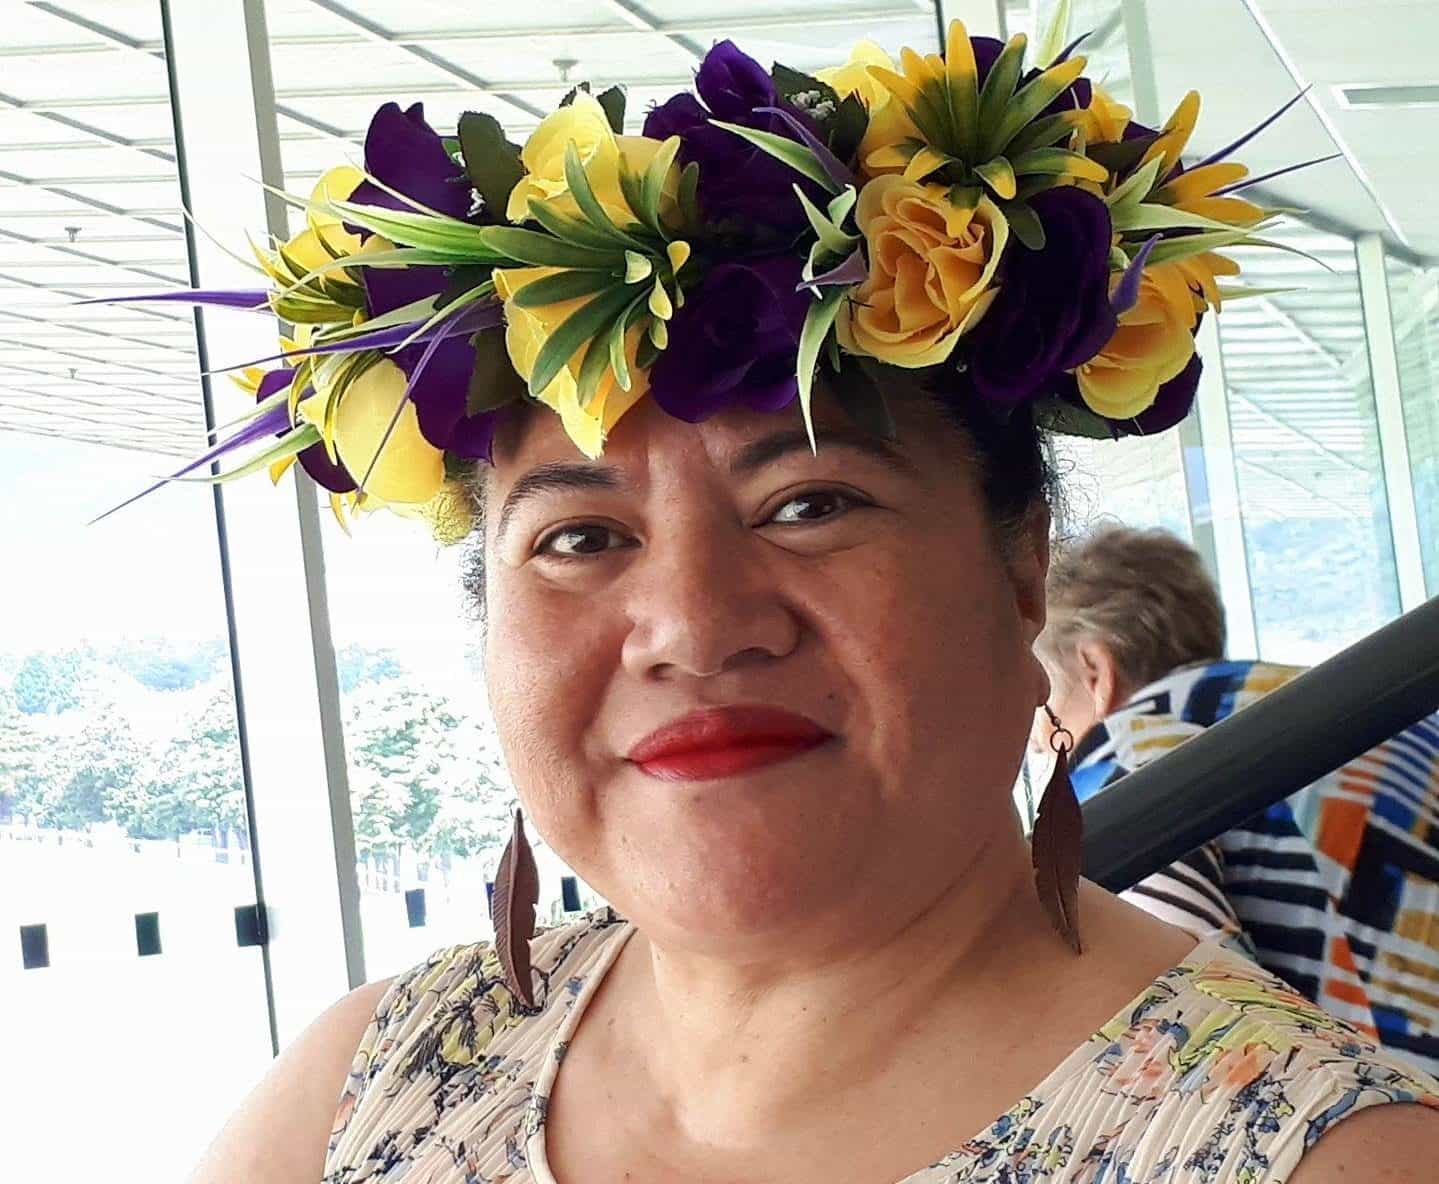 Moera Tuilaepa-Taylor, manager of RNZ Pacific